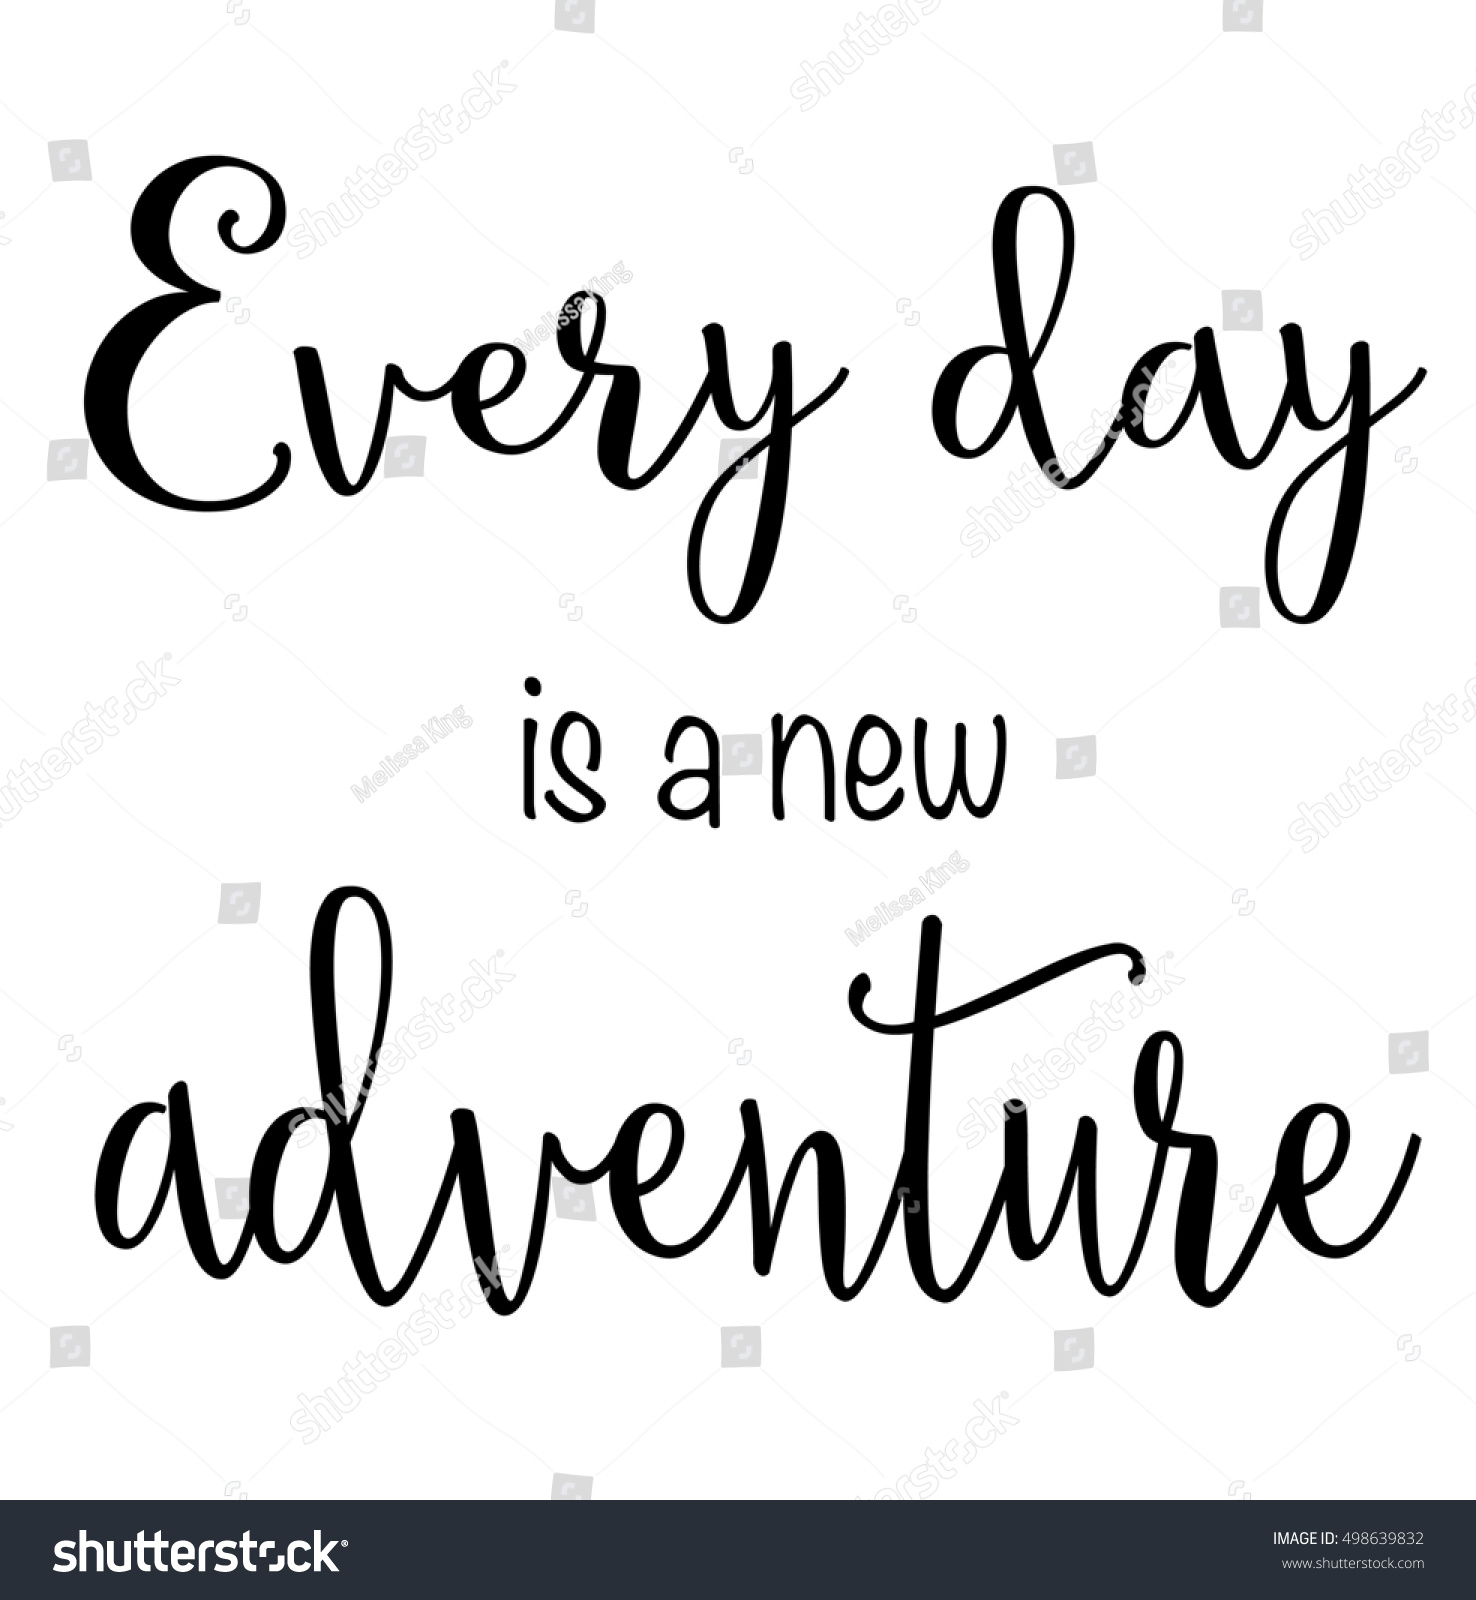 Qoute Of Day Quote Every Day New Adventure Stock Illustration 498639832